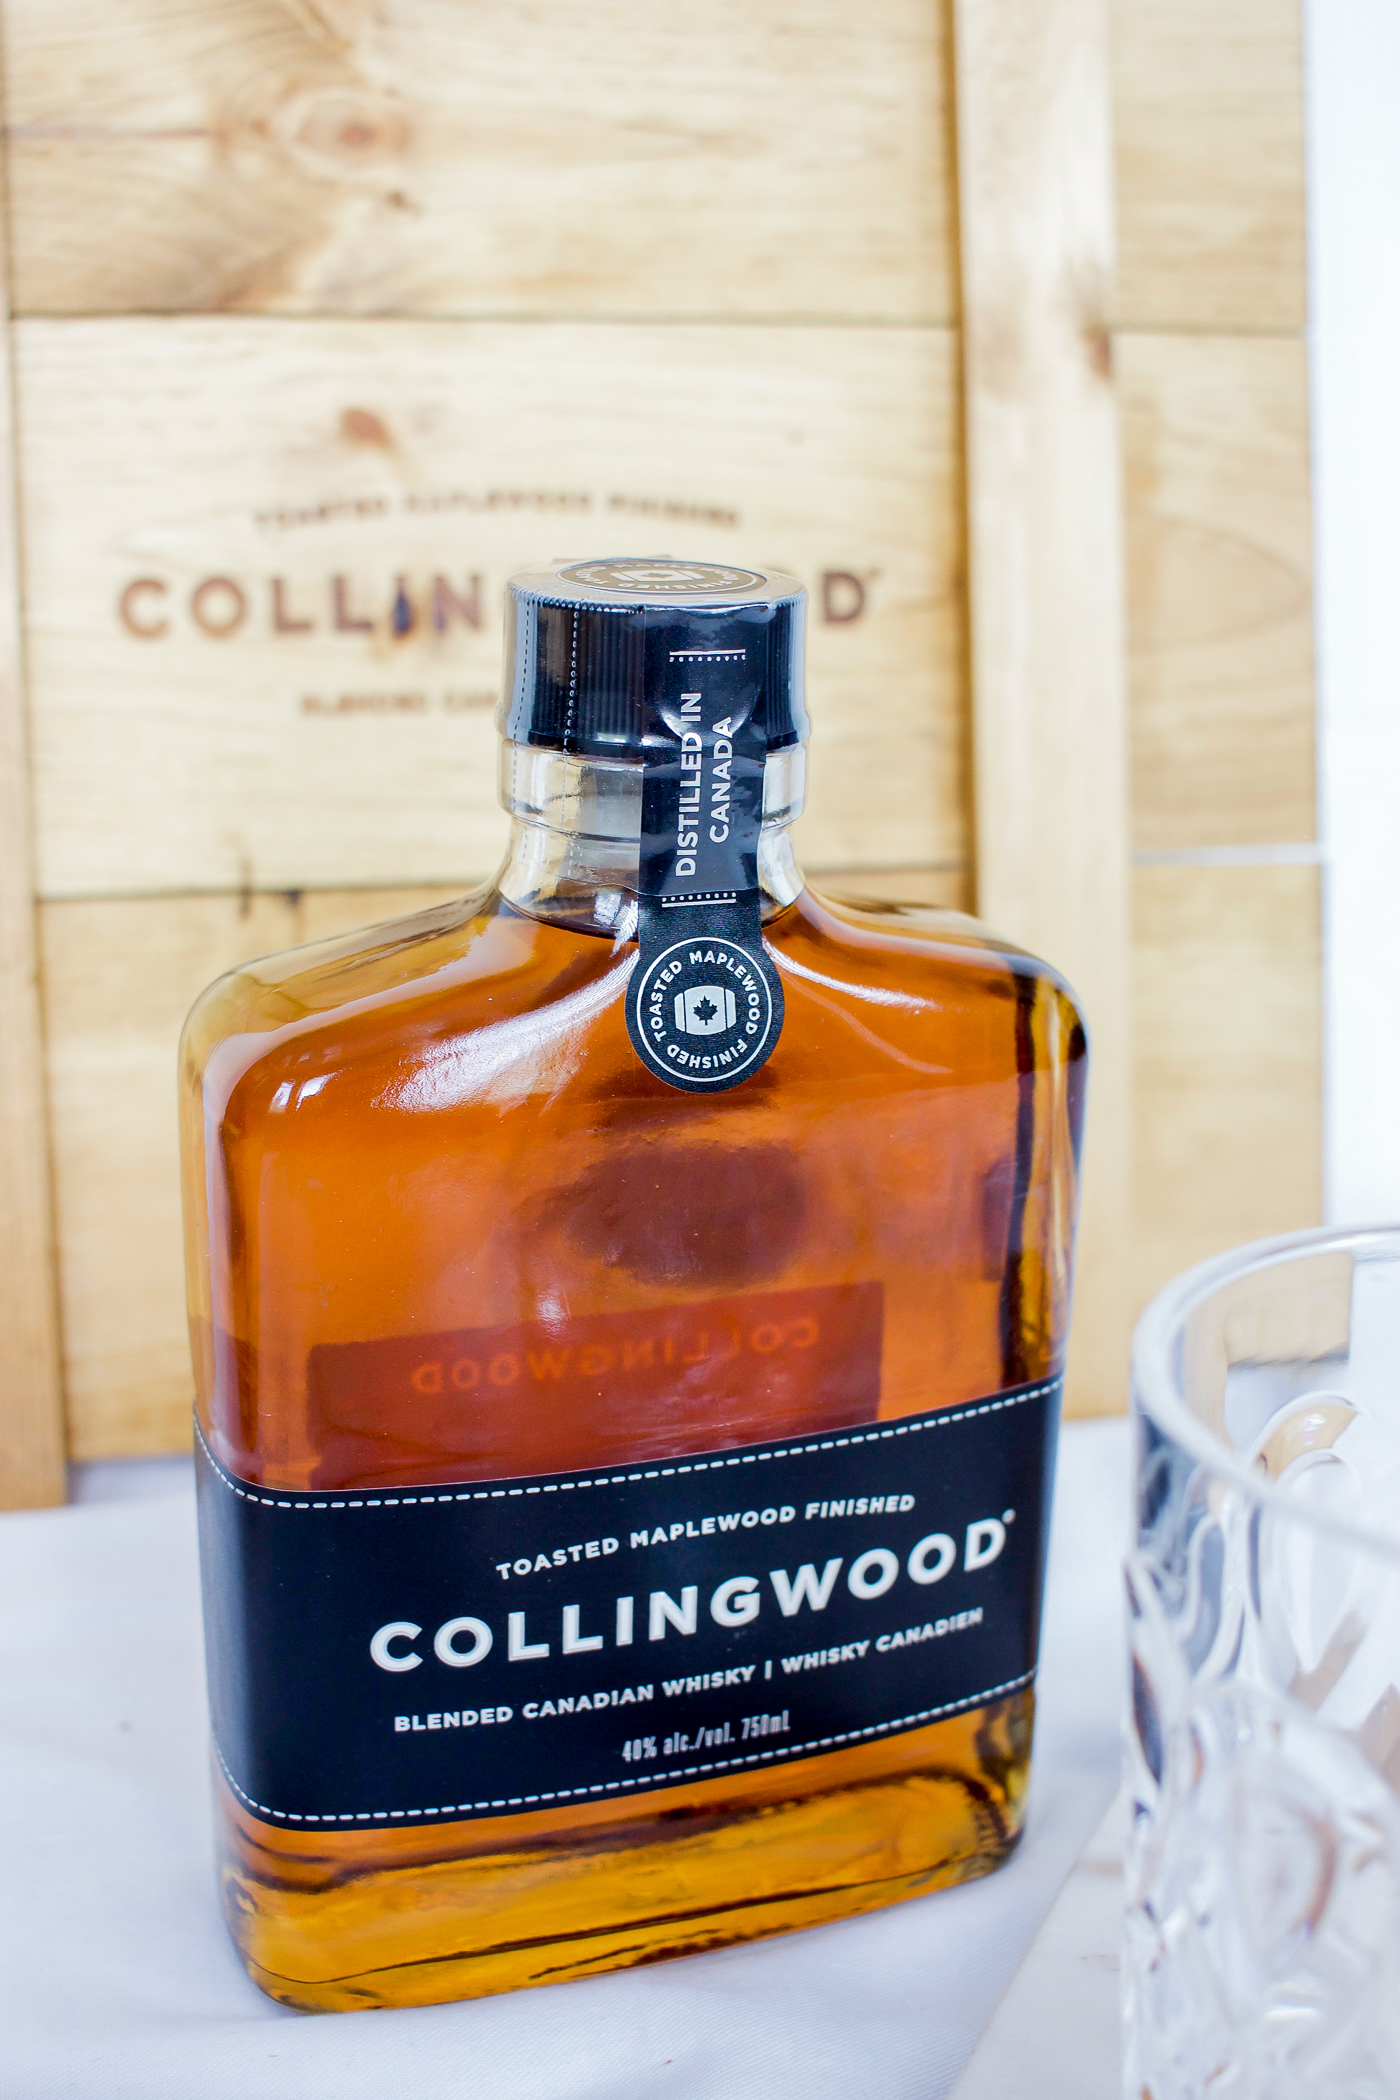 Collingwood Whiskey is what I used in the base of a girly, simple cocktail recipe